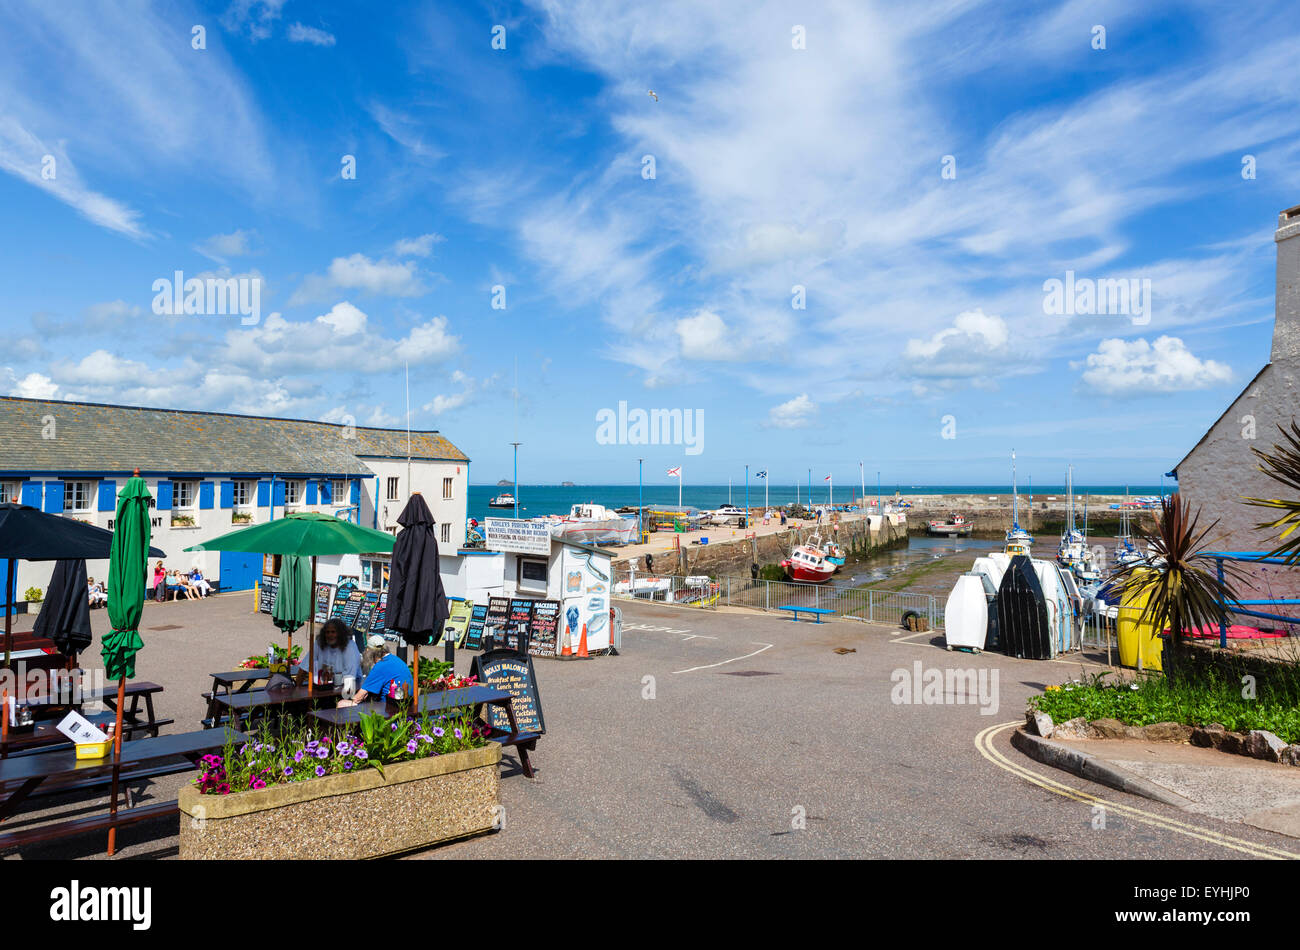 The harbour in Paignton, Torbay, Devon, England, UK - Stock Image